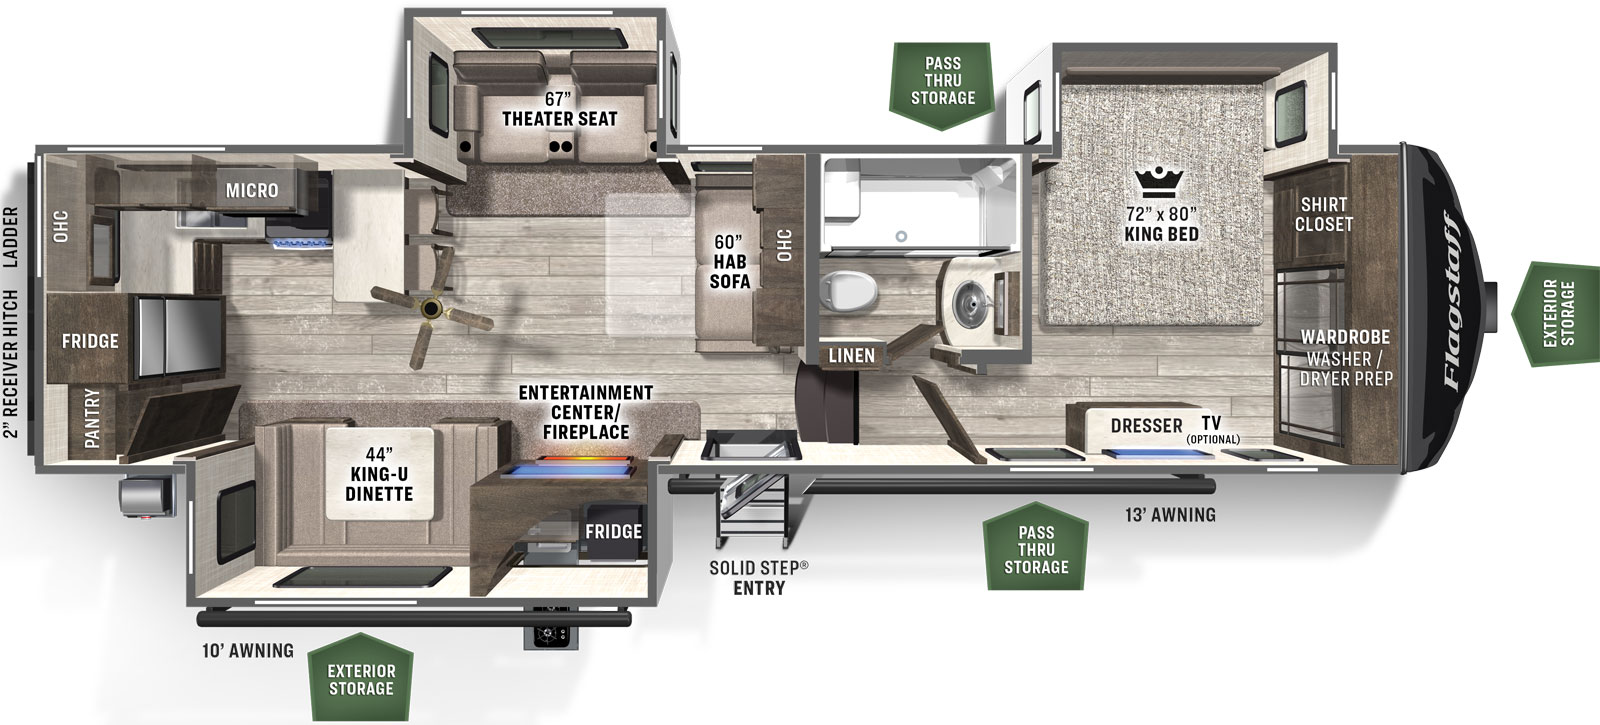 Flagstaff Classic 8529rksb Forest River Rv Manufacturer Of Travel Trailers Fifth Wheels Tent Campers Motorhomes